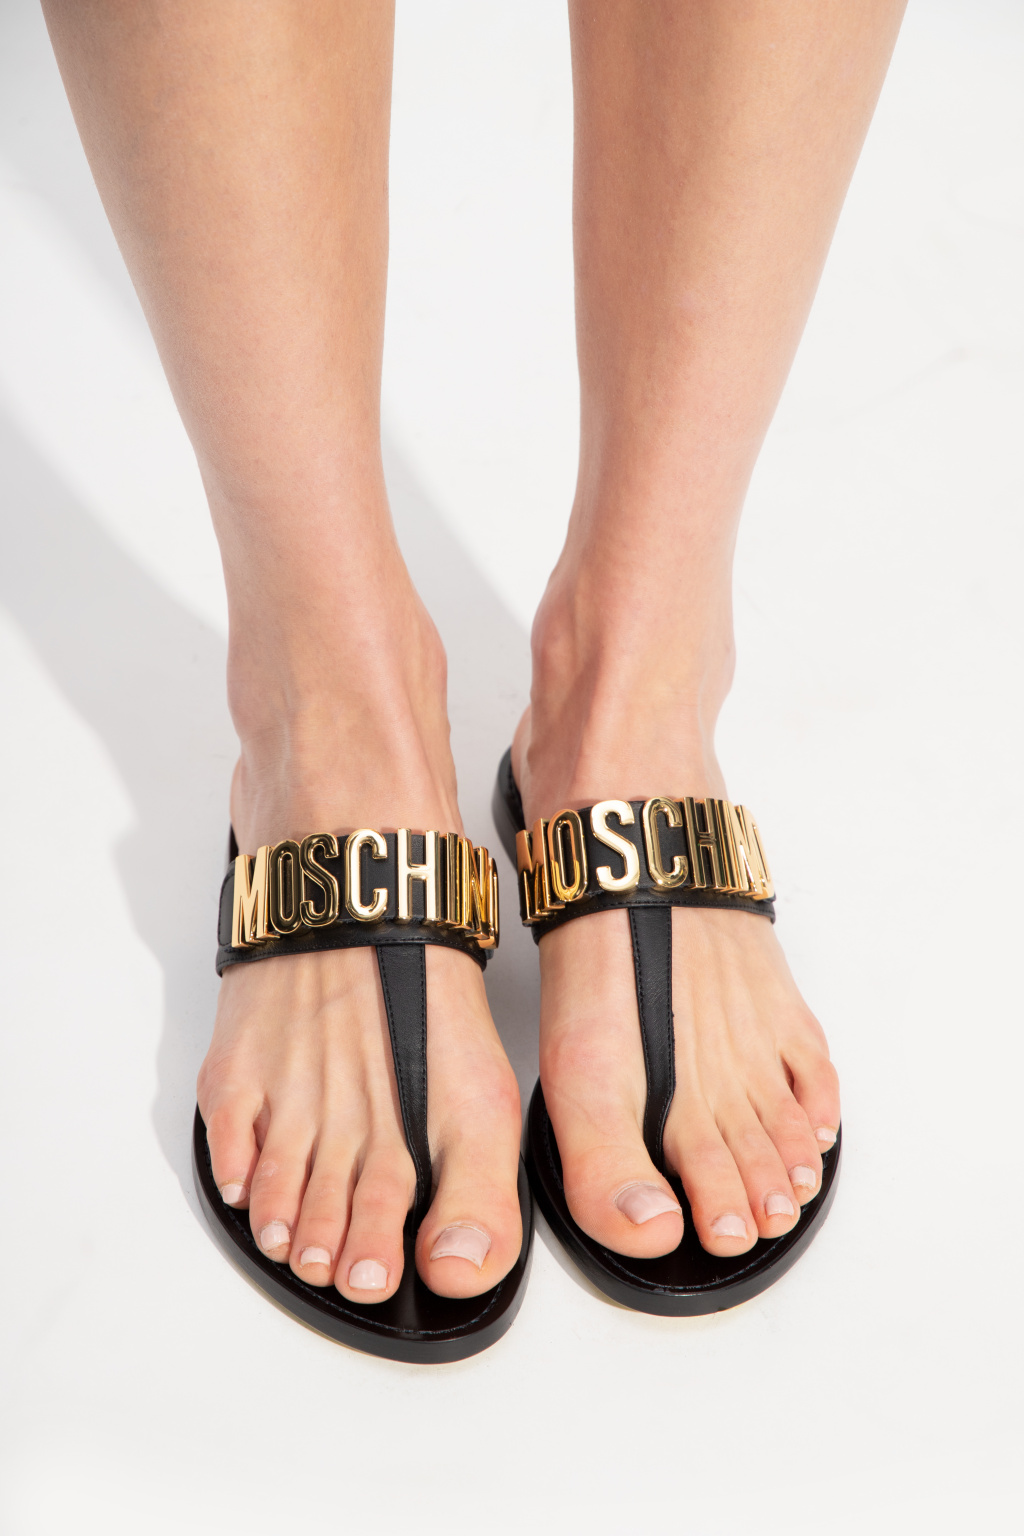 Moschino Flip-flips with logo